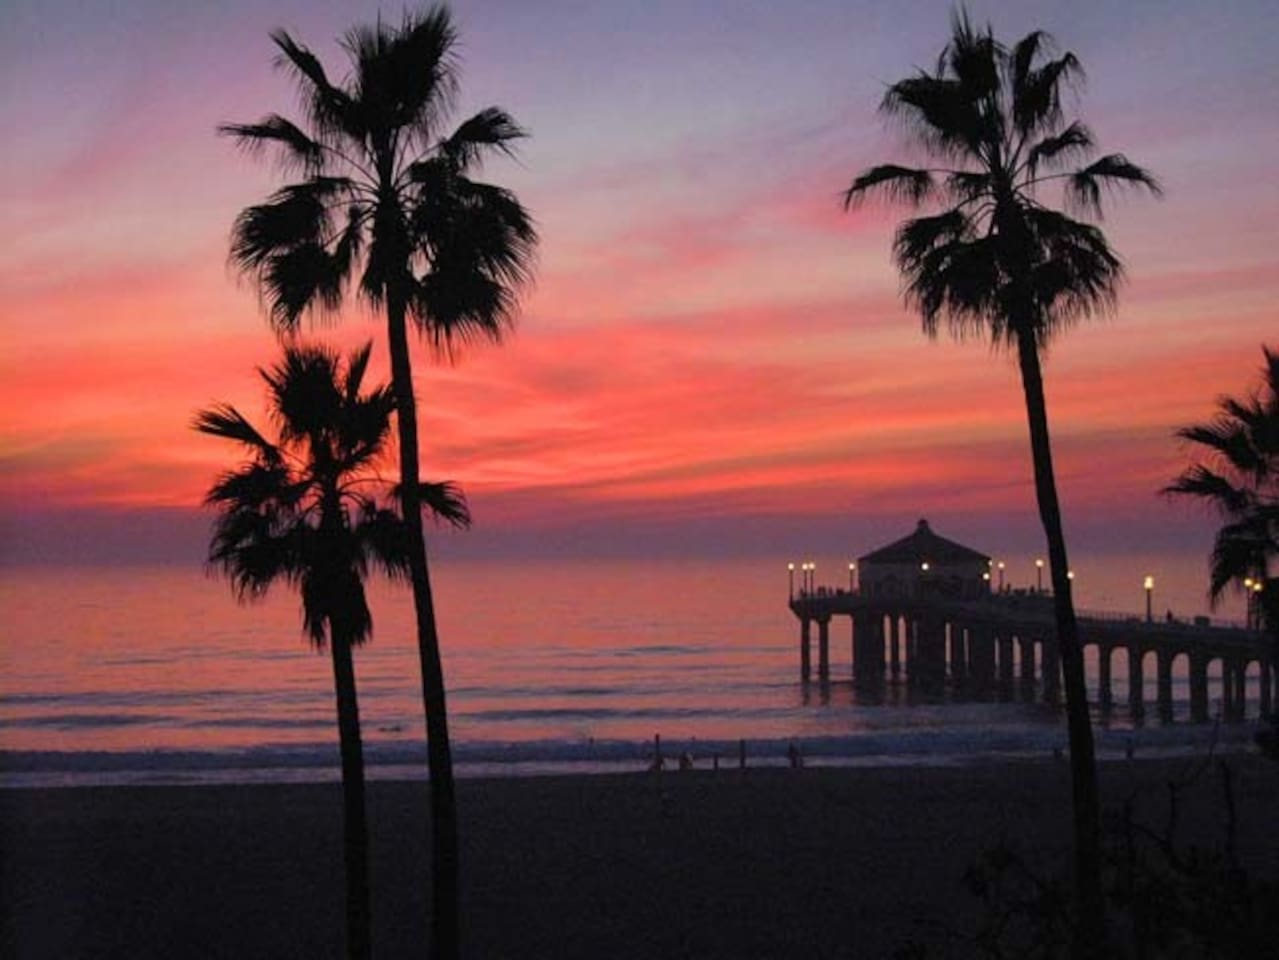 Enjoy the Manhattan Beach Lifestyle by checking in to this most desirable address